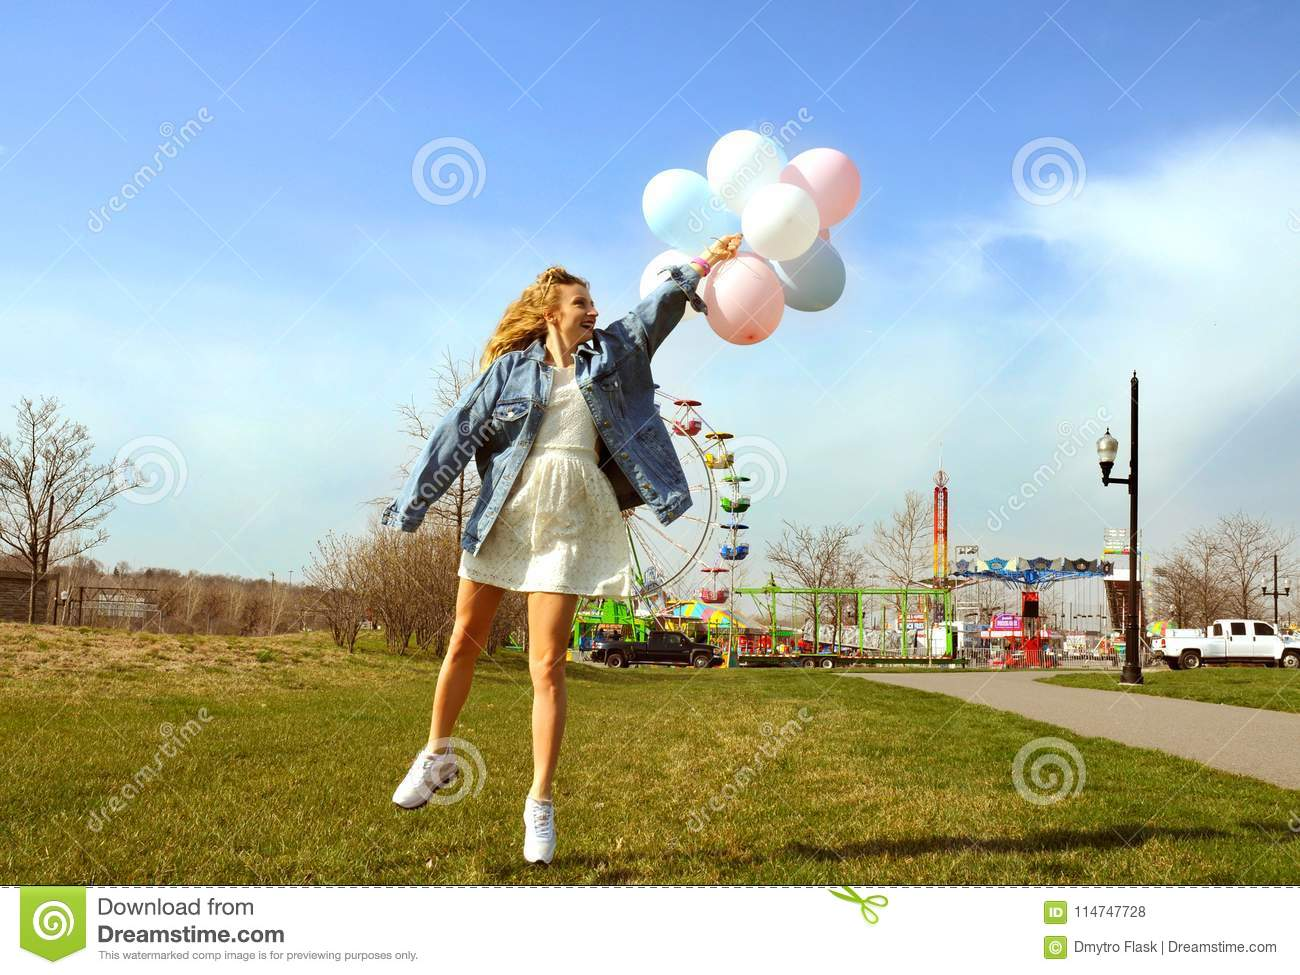 Beautiful young woman with balloons in the amusement park